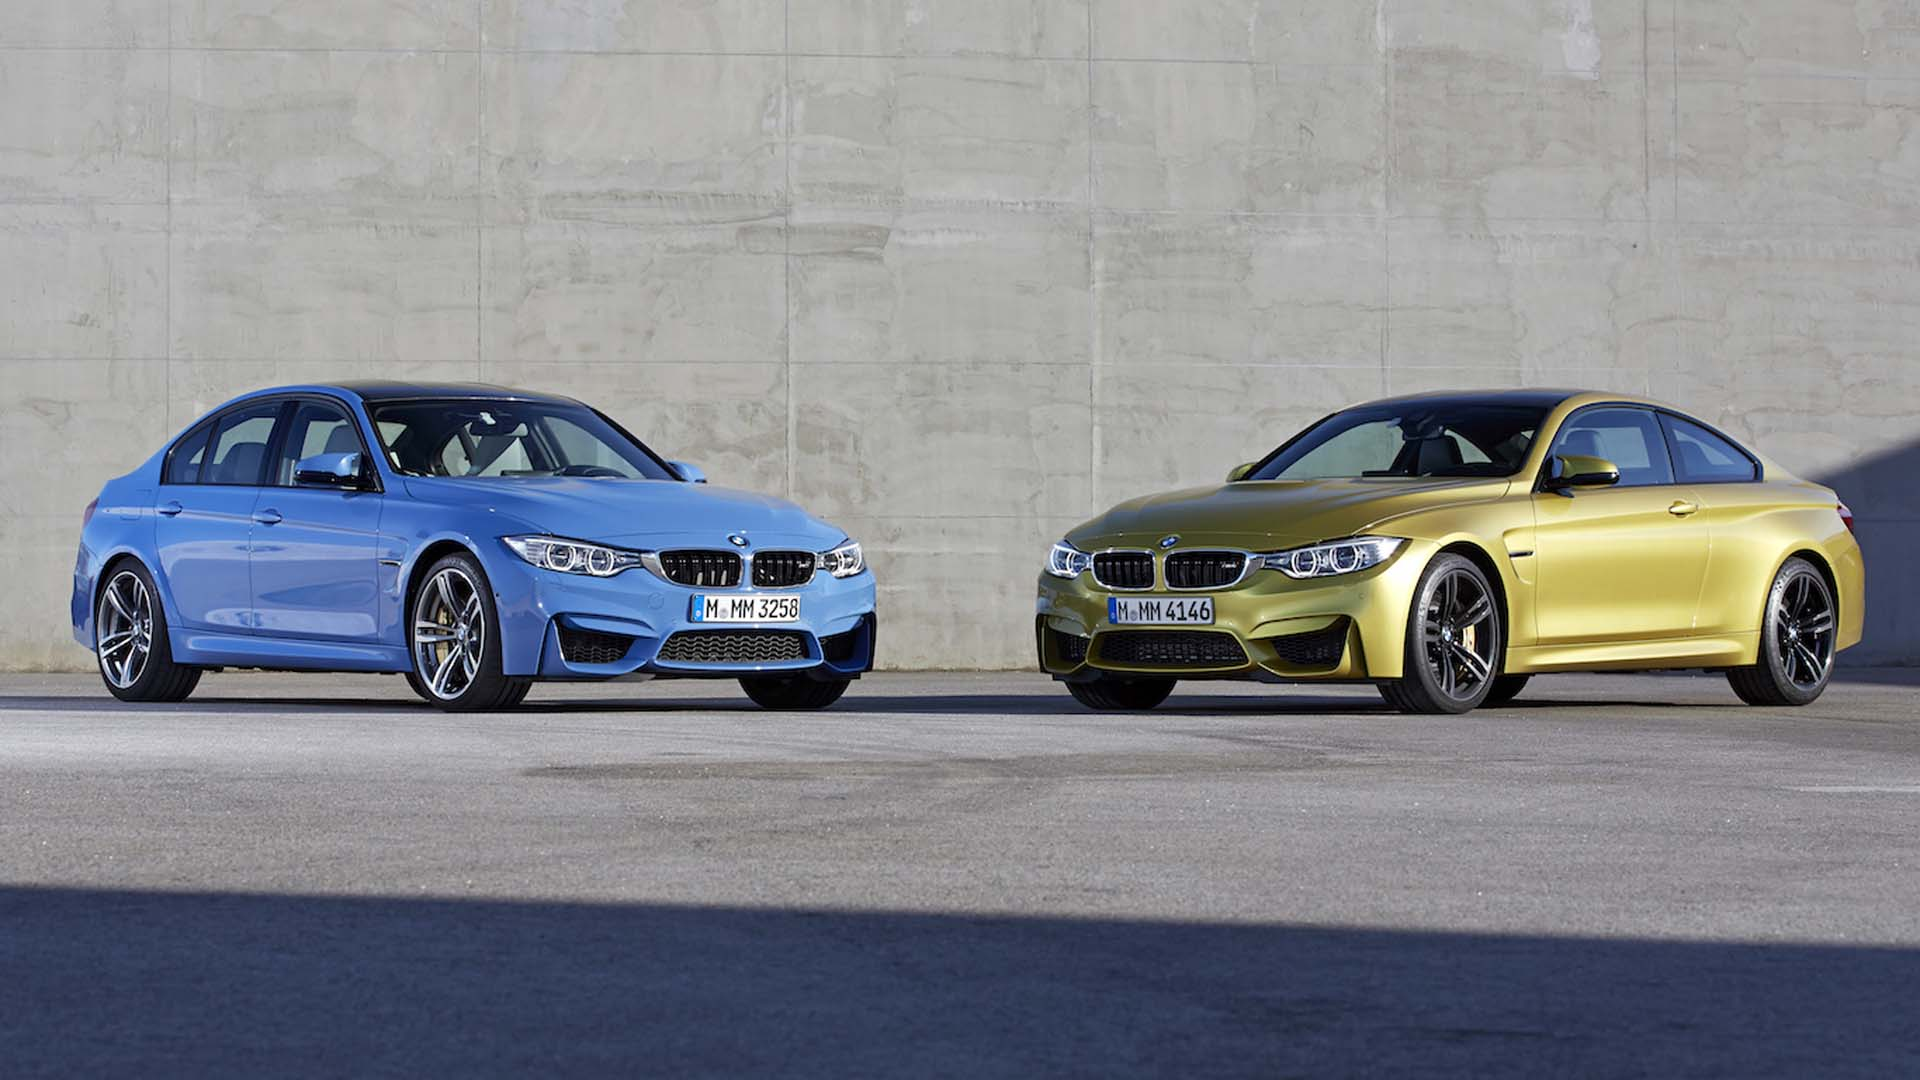 2014 BMW F80 M3 Saloon and F82 M4 Coupe